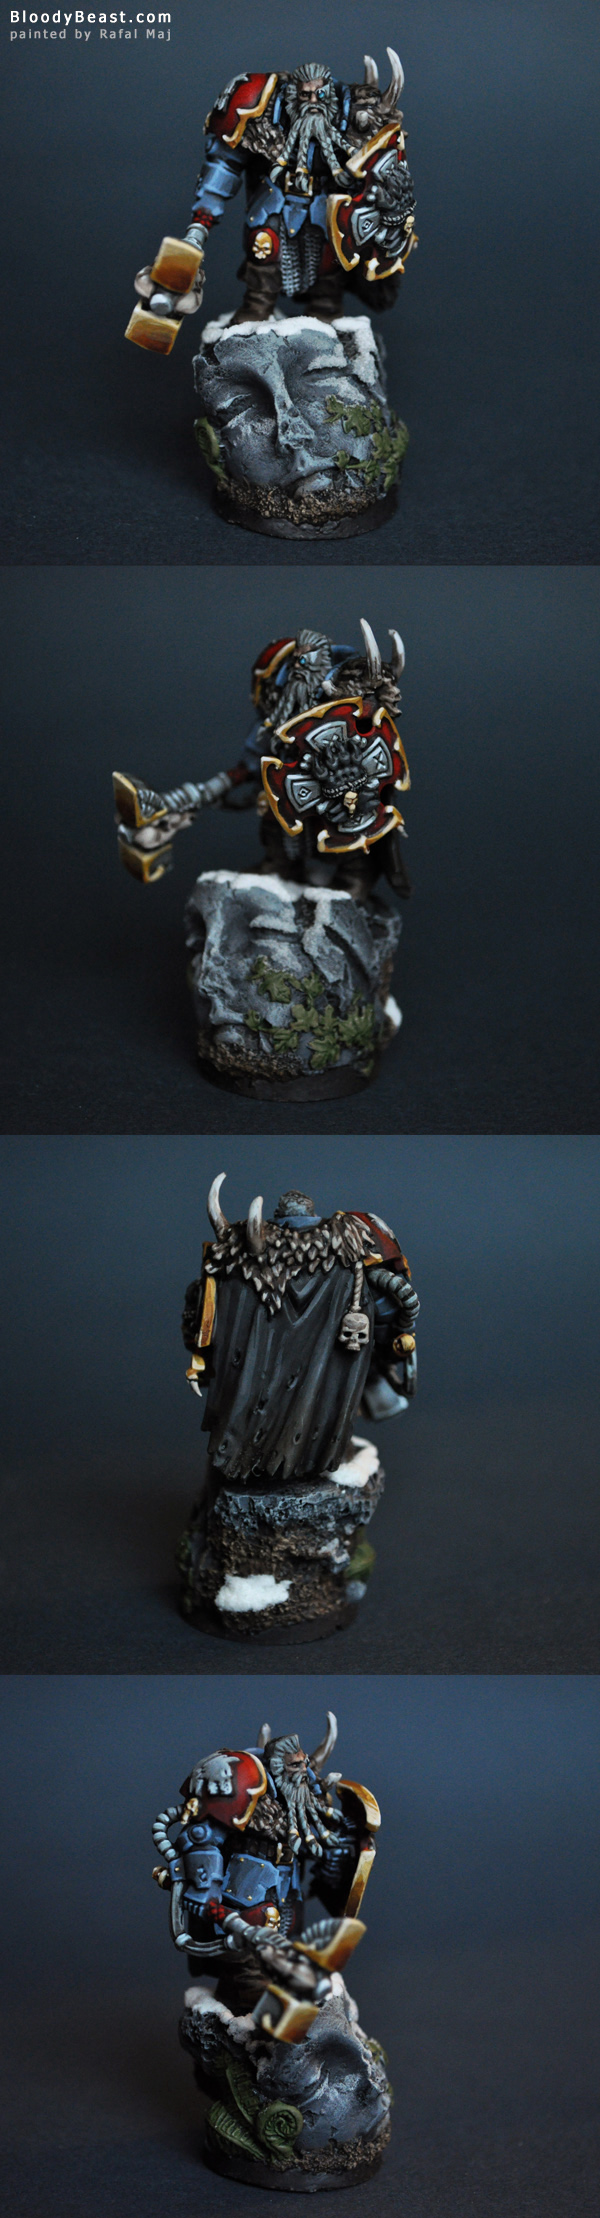 Space Wolves Lone Wolf with Thunderhammer and Storm Shield painted by Rafal Maj (BloodyBeast.com)